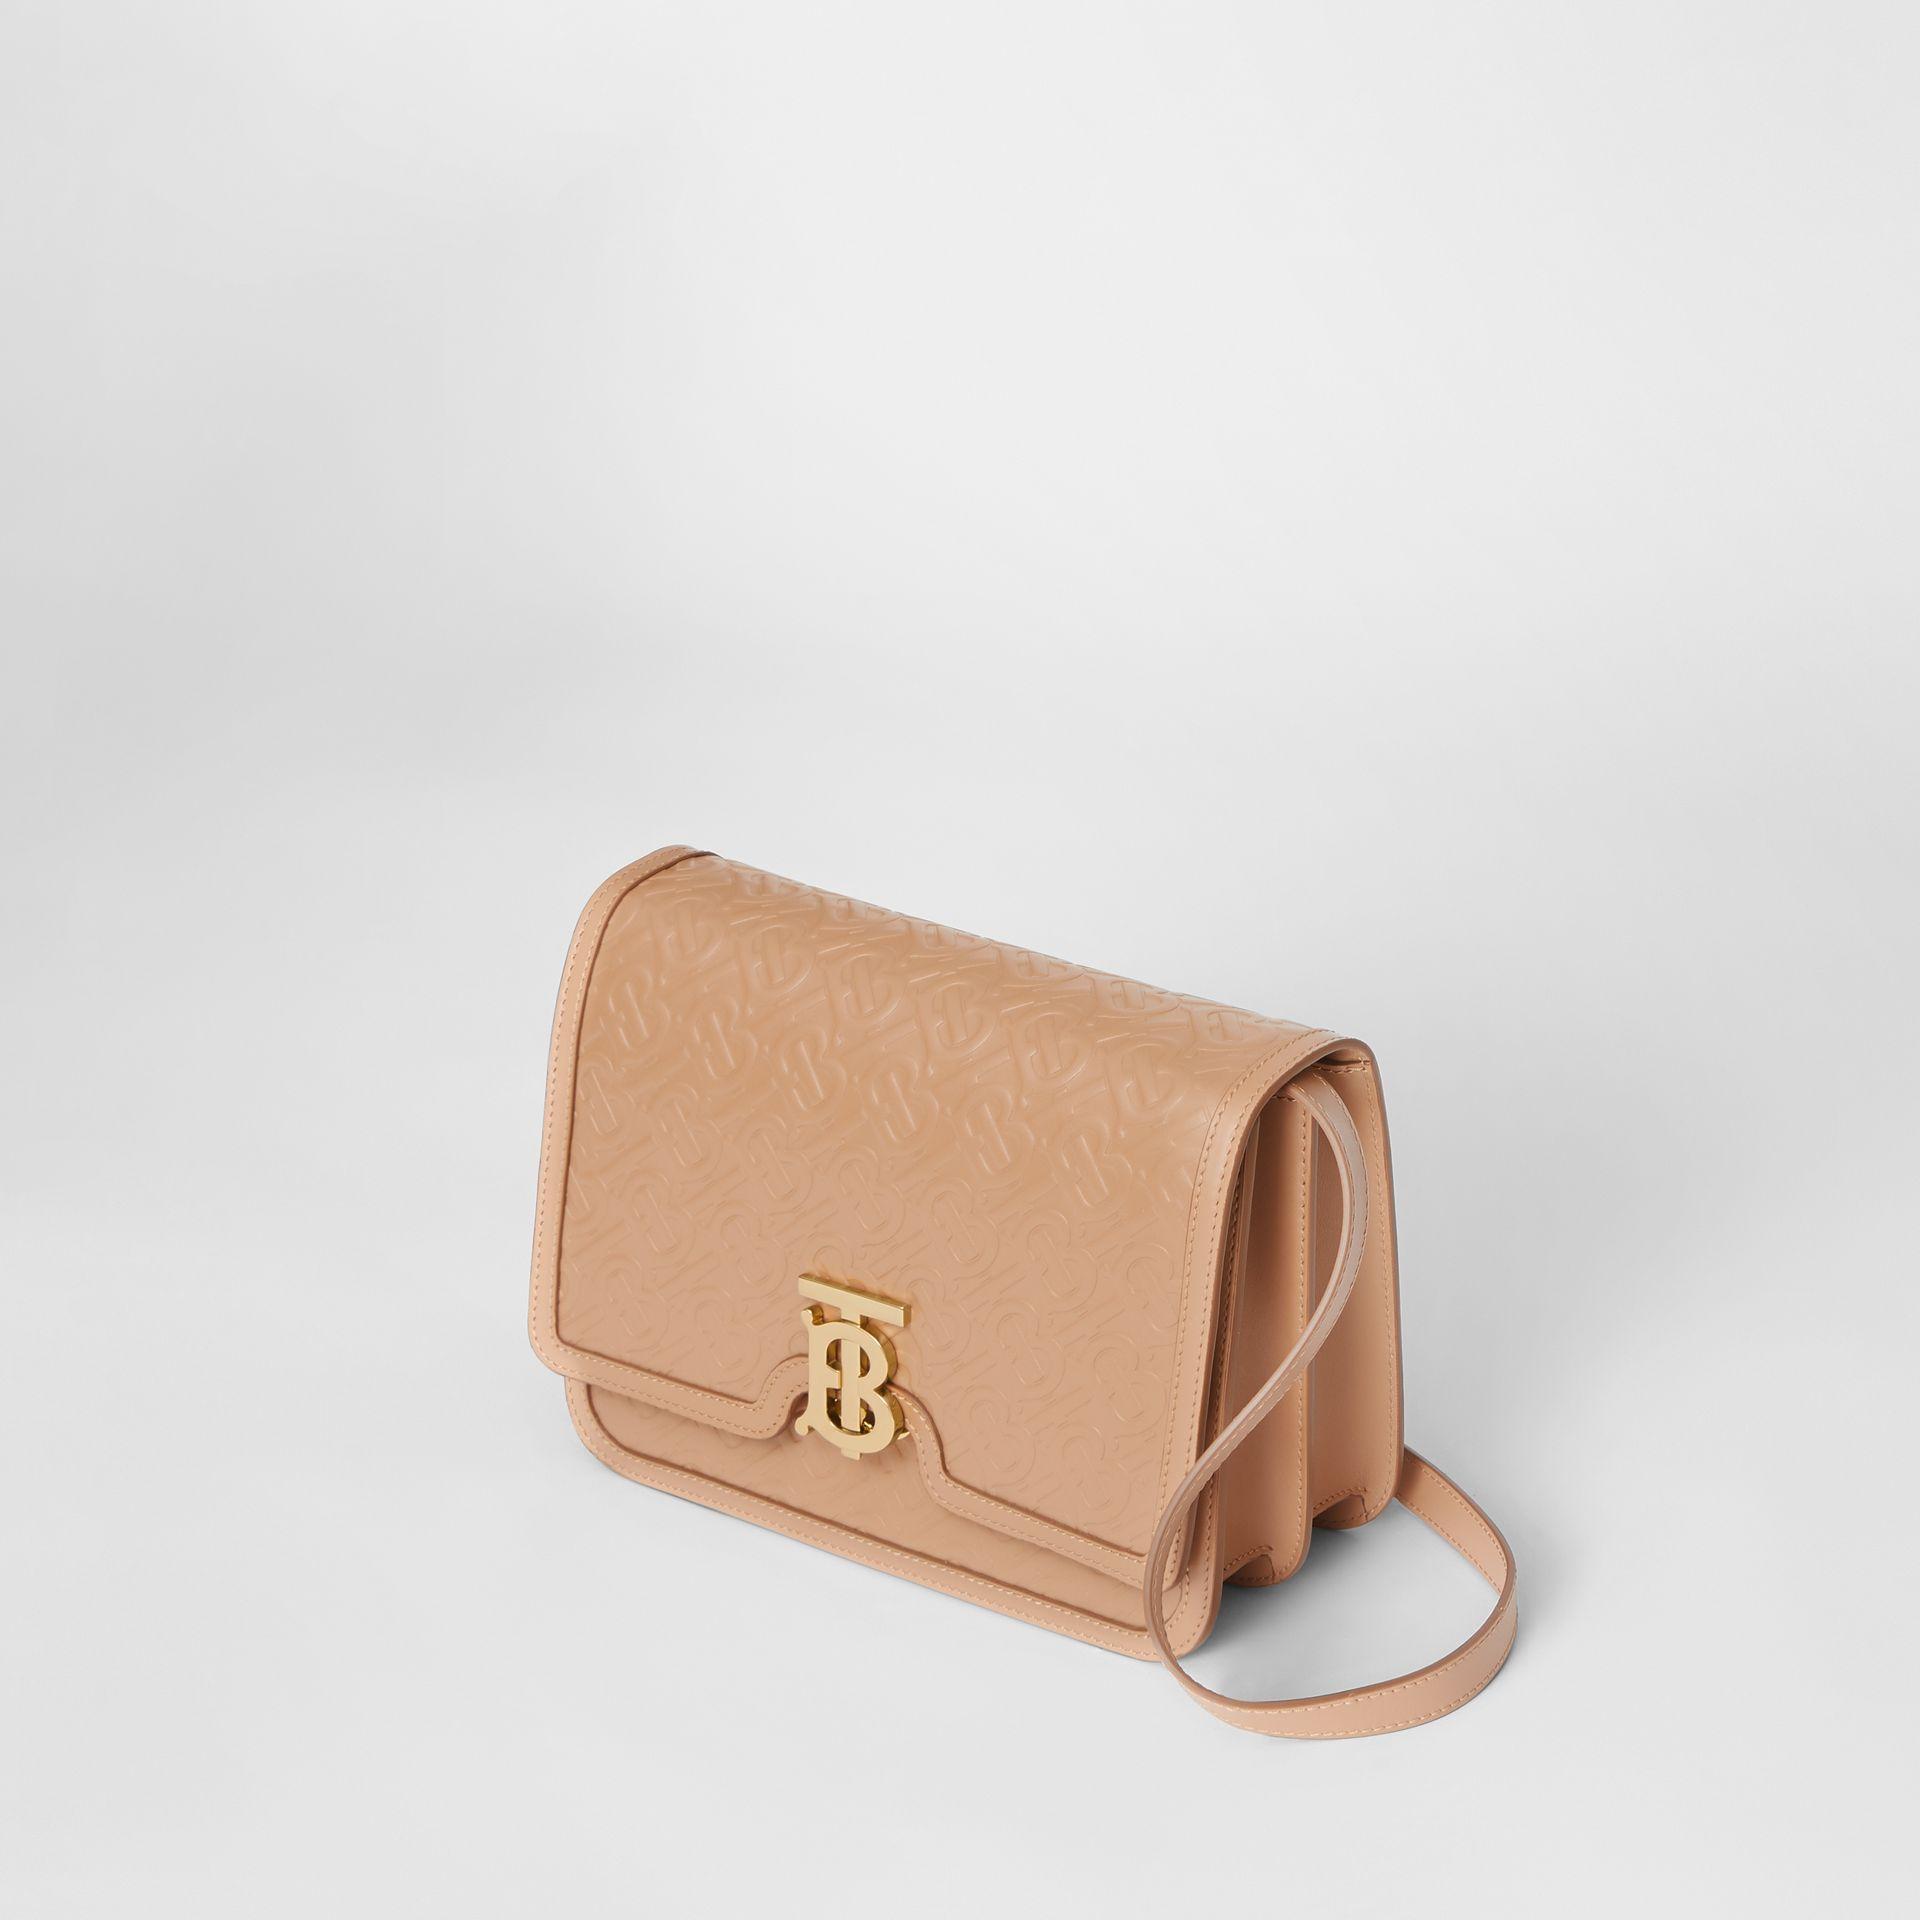 Medium Monogram Leather TB Bag in Light Camel - Women | Burberry - gallery image 2